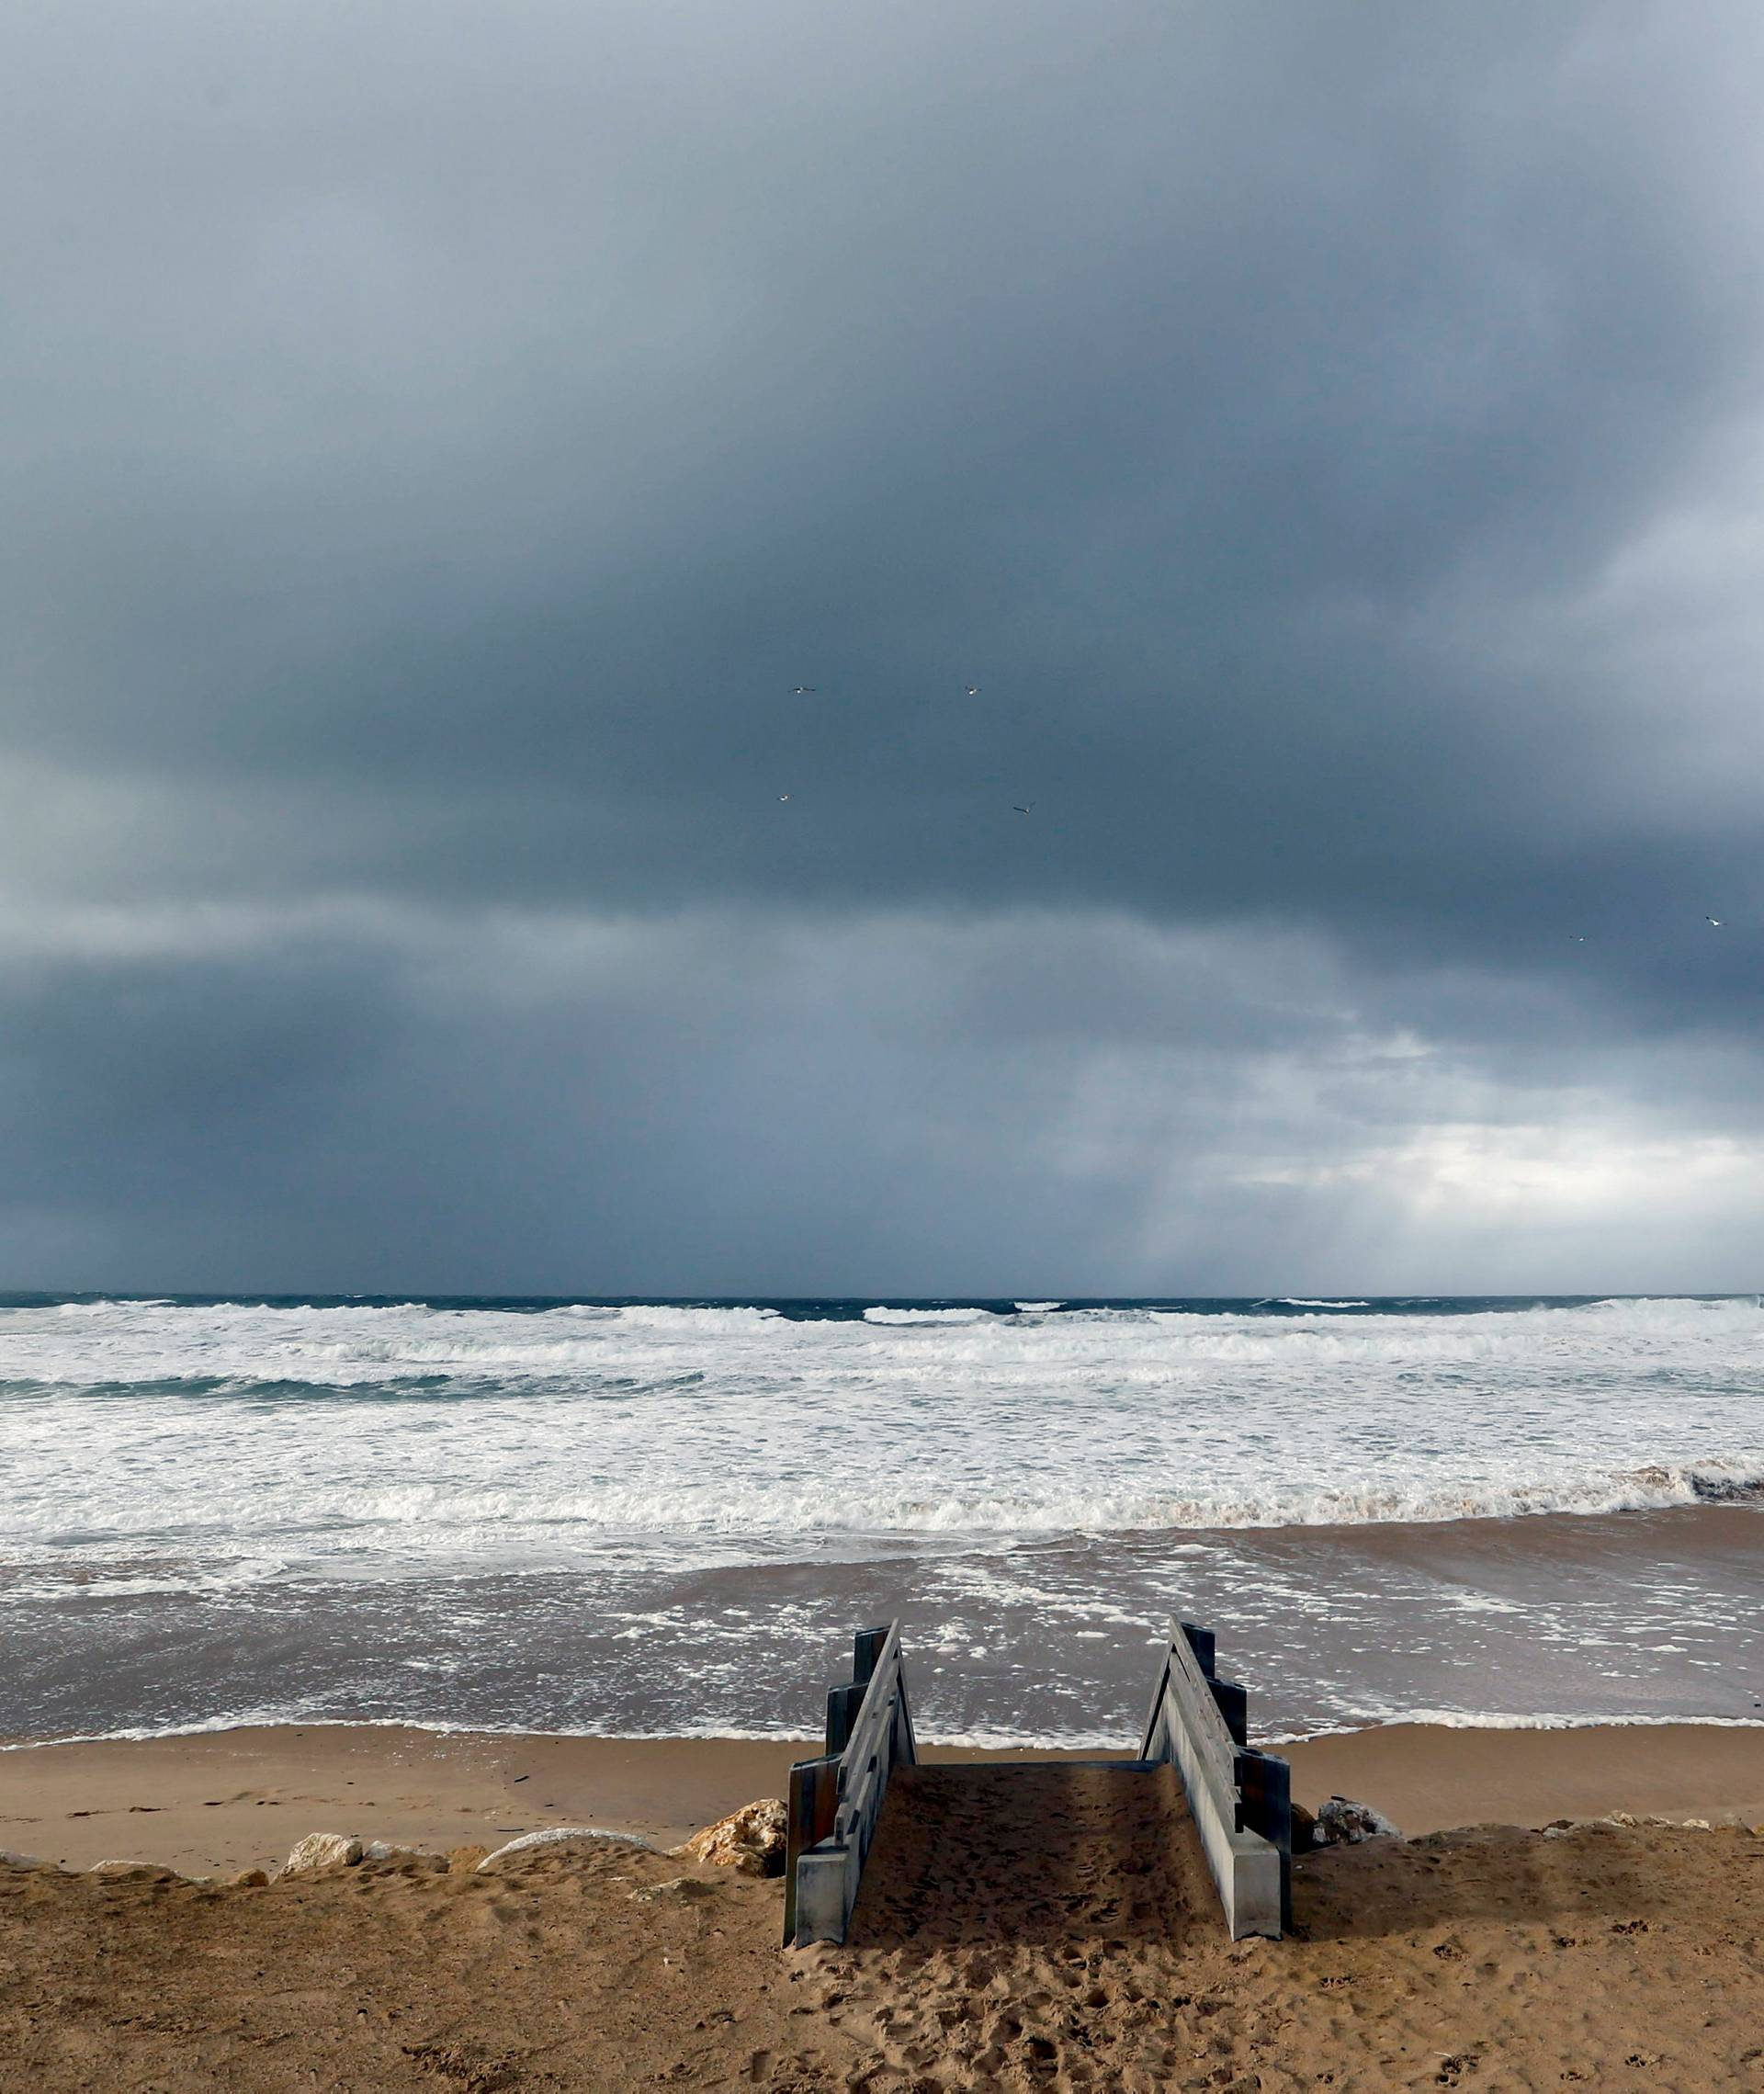 Clouds hang in the sky above the Atlantic ocean as waves from an early winter storm covers the beachfront in Lacanau